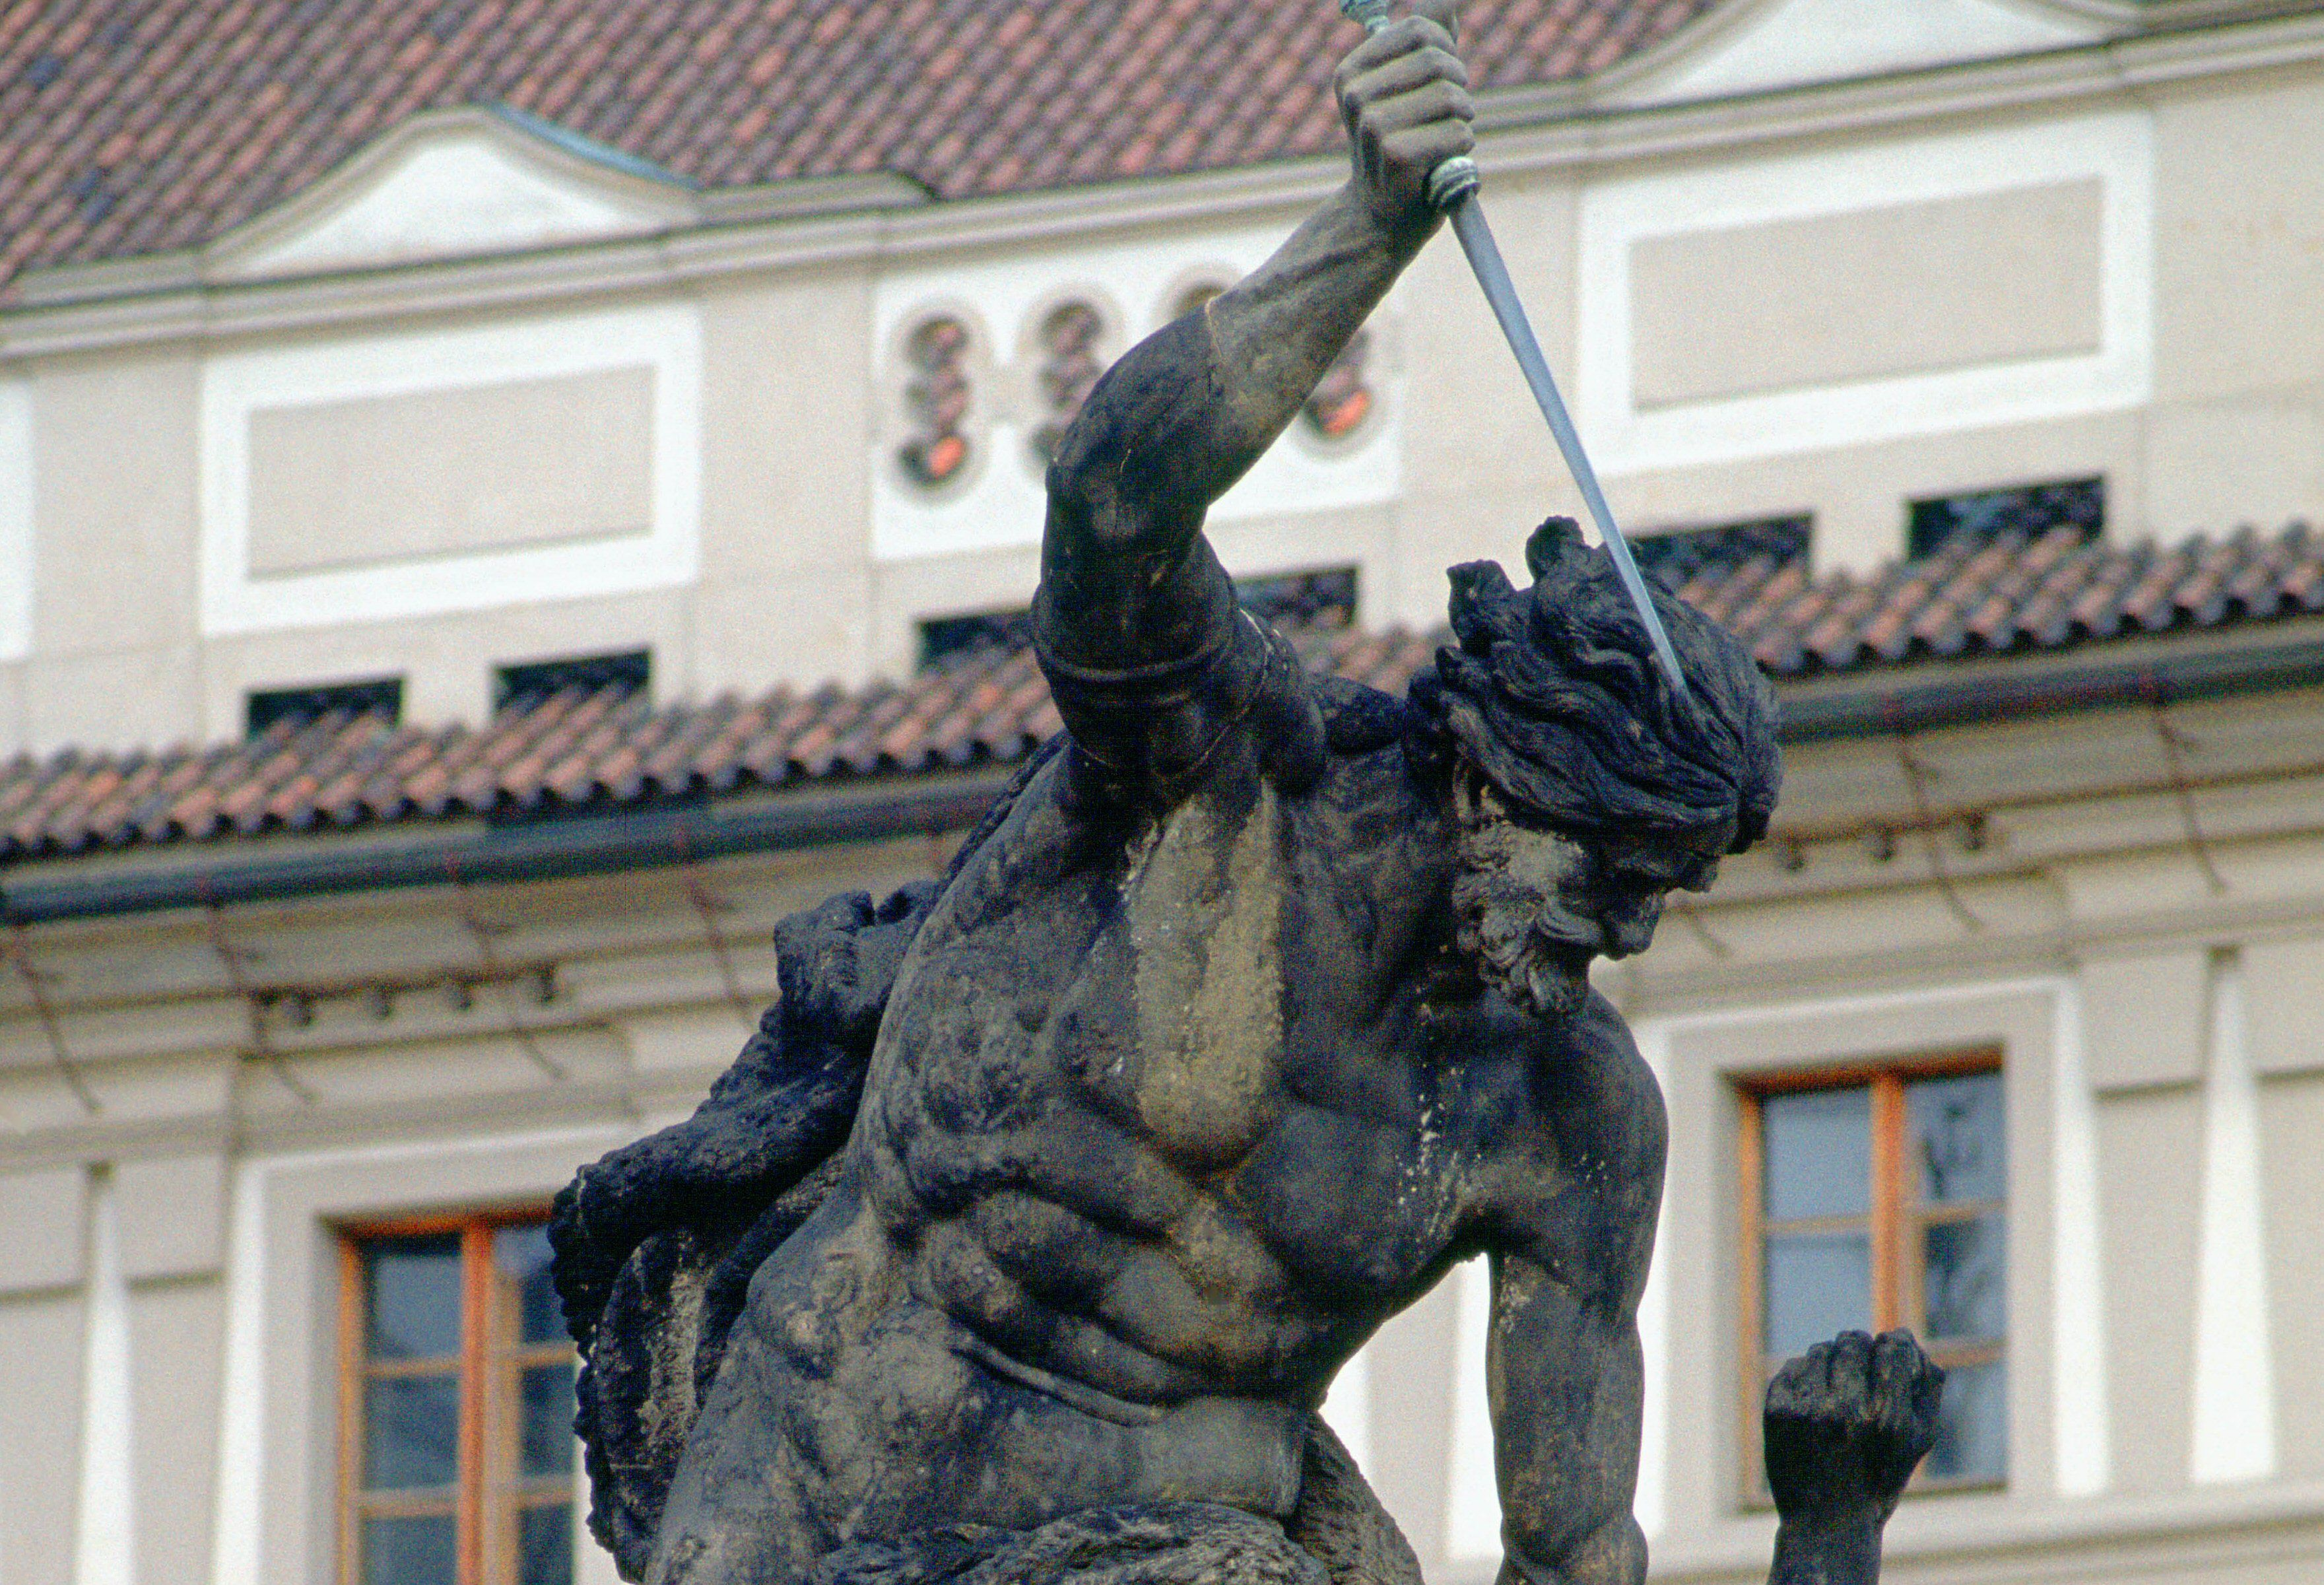 Statue in Hradcany Castle, Prague of one man about to knife another, who begs for his life